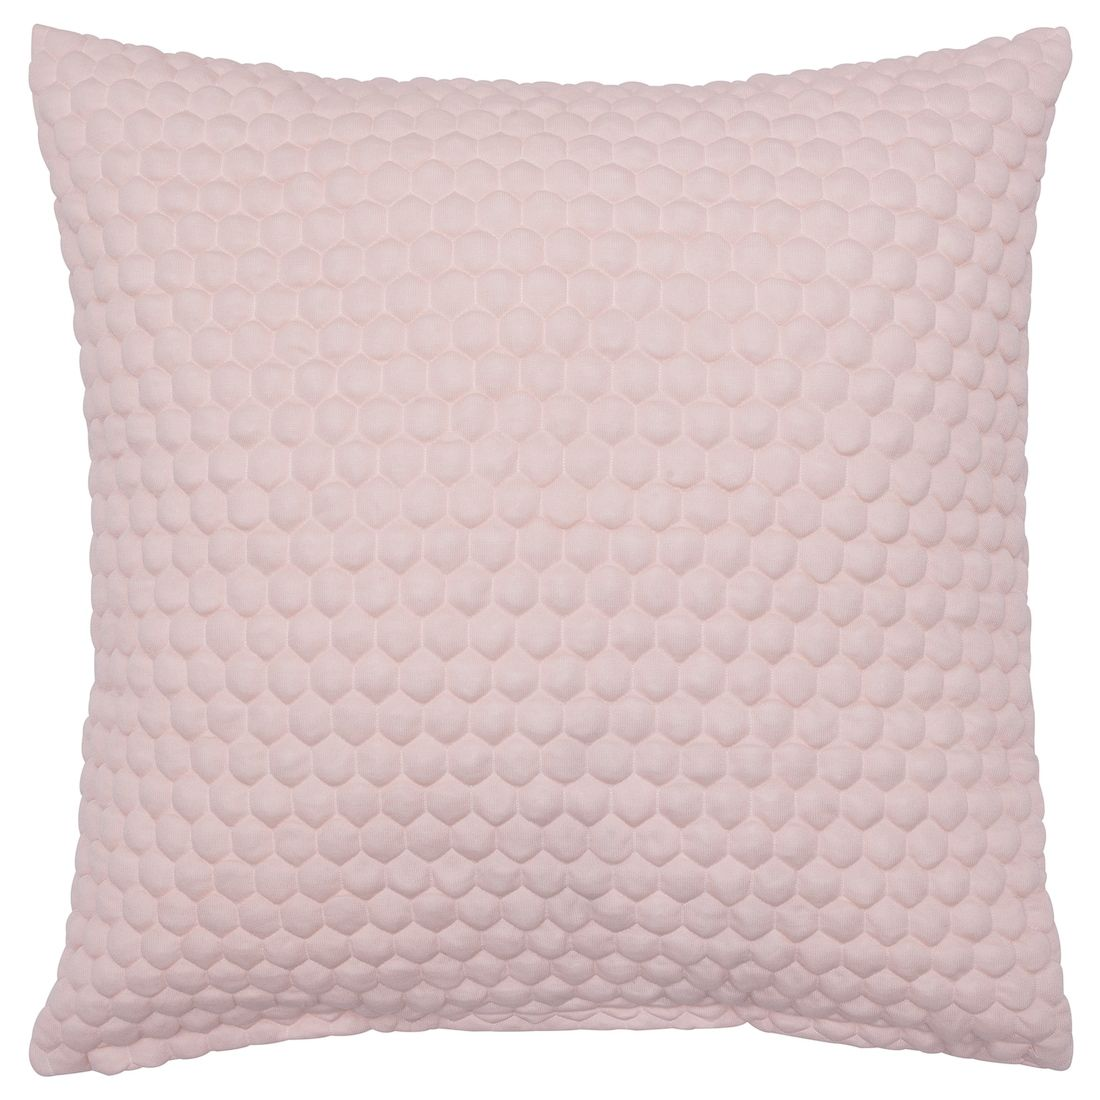 Ikea Lenja Kissenbezug Cushion Cover Diamond Pattern Cushions